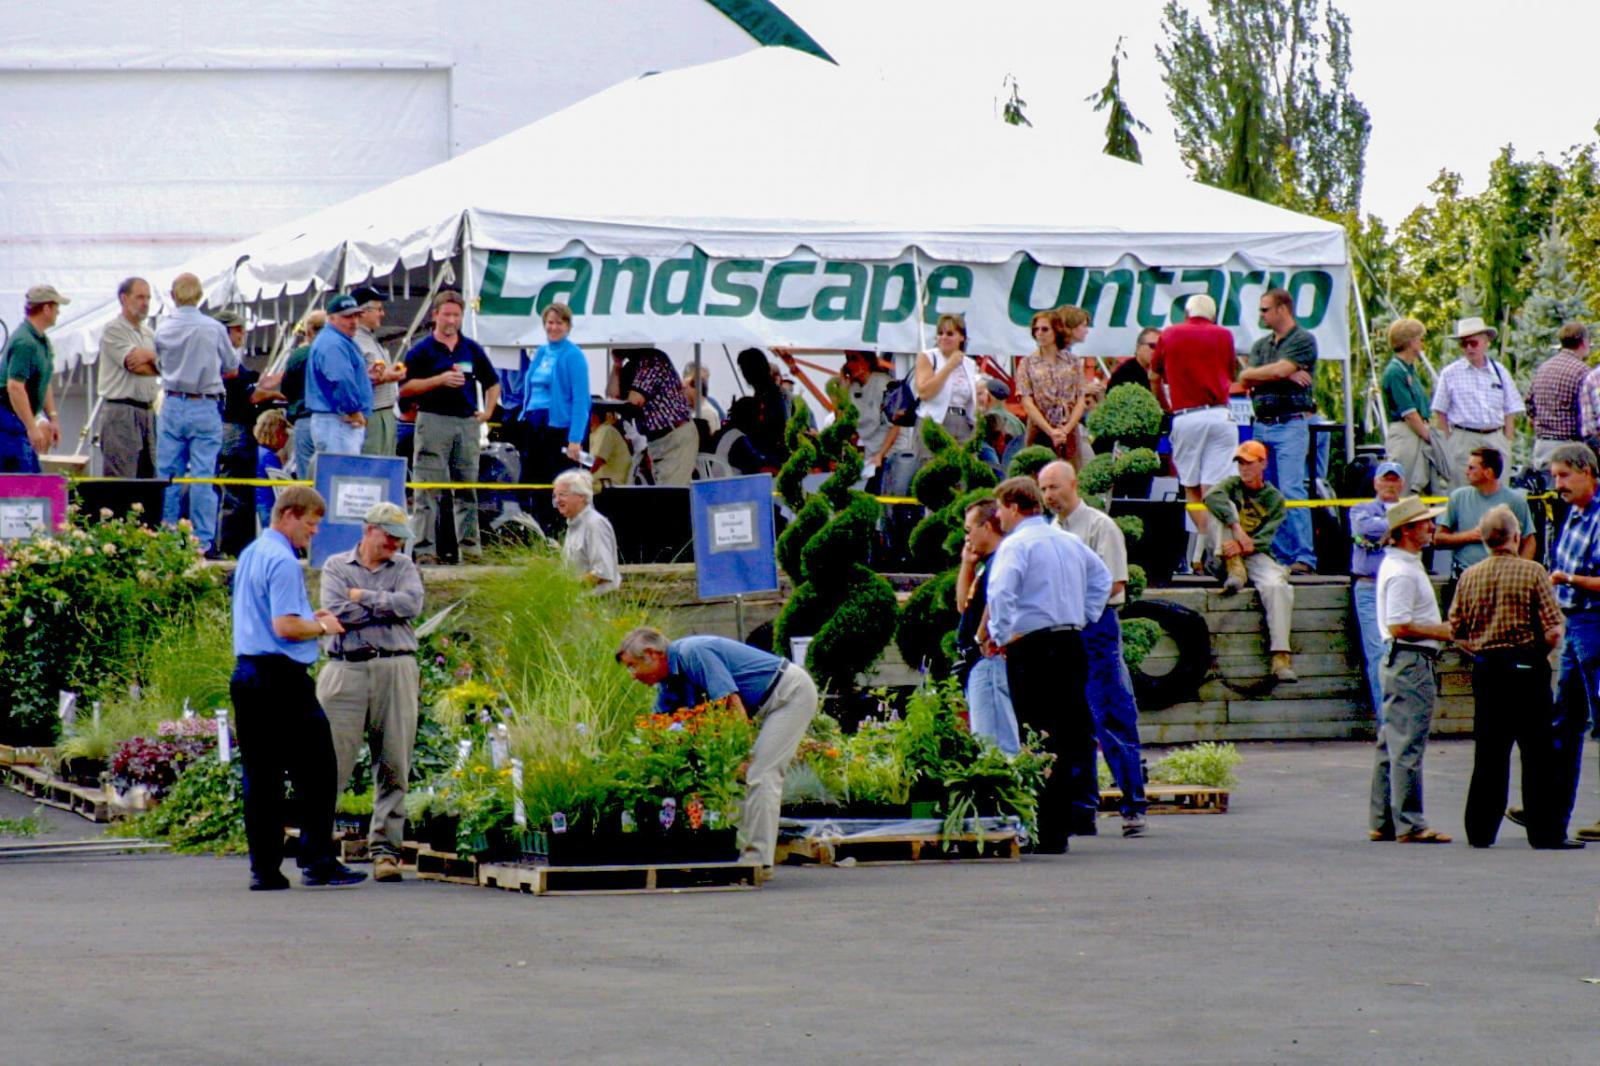 Landscape Ontario celebrates 40 years - 2002